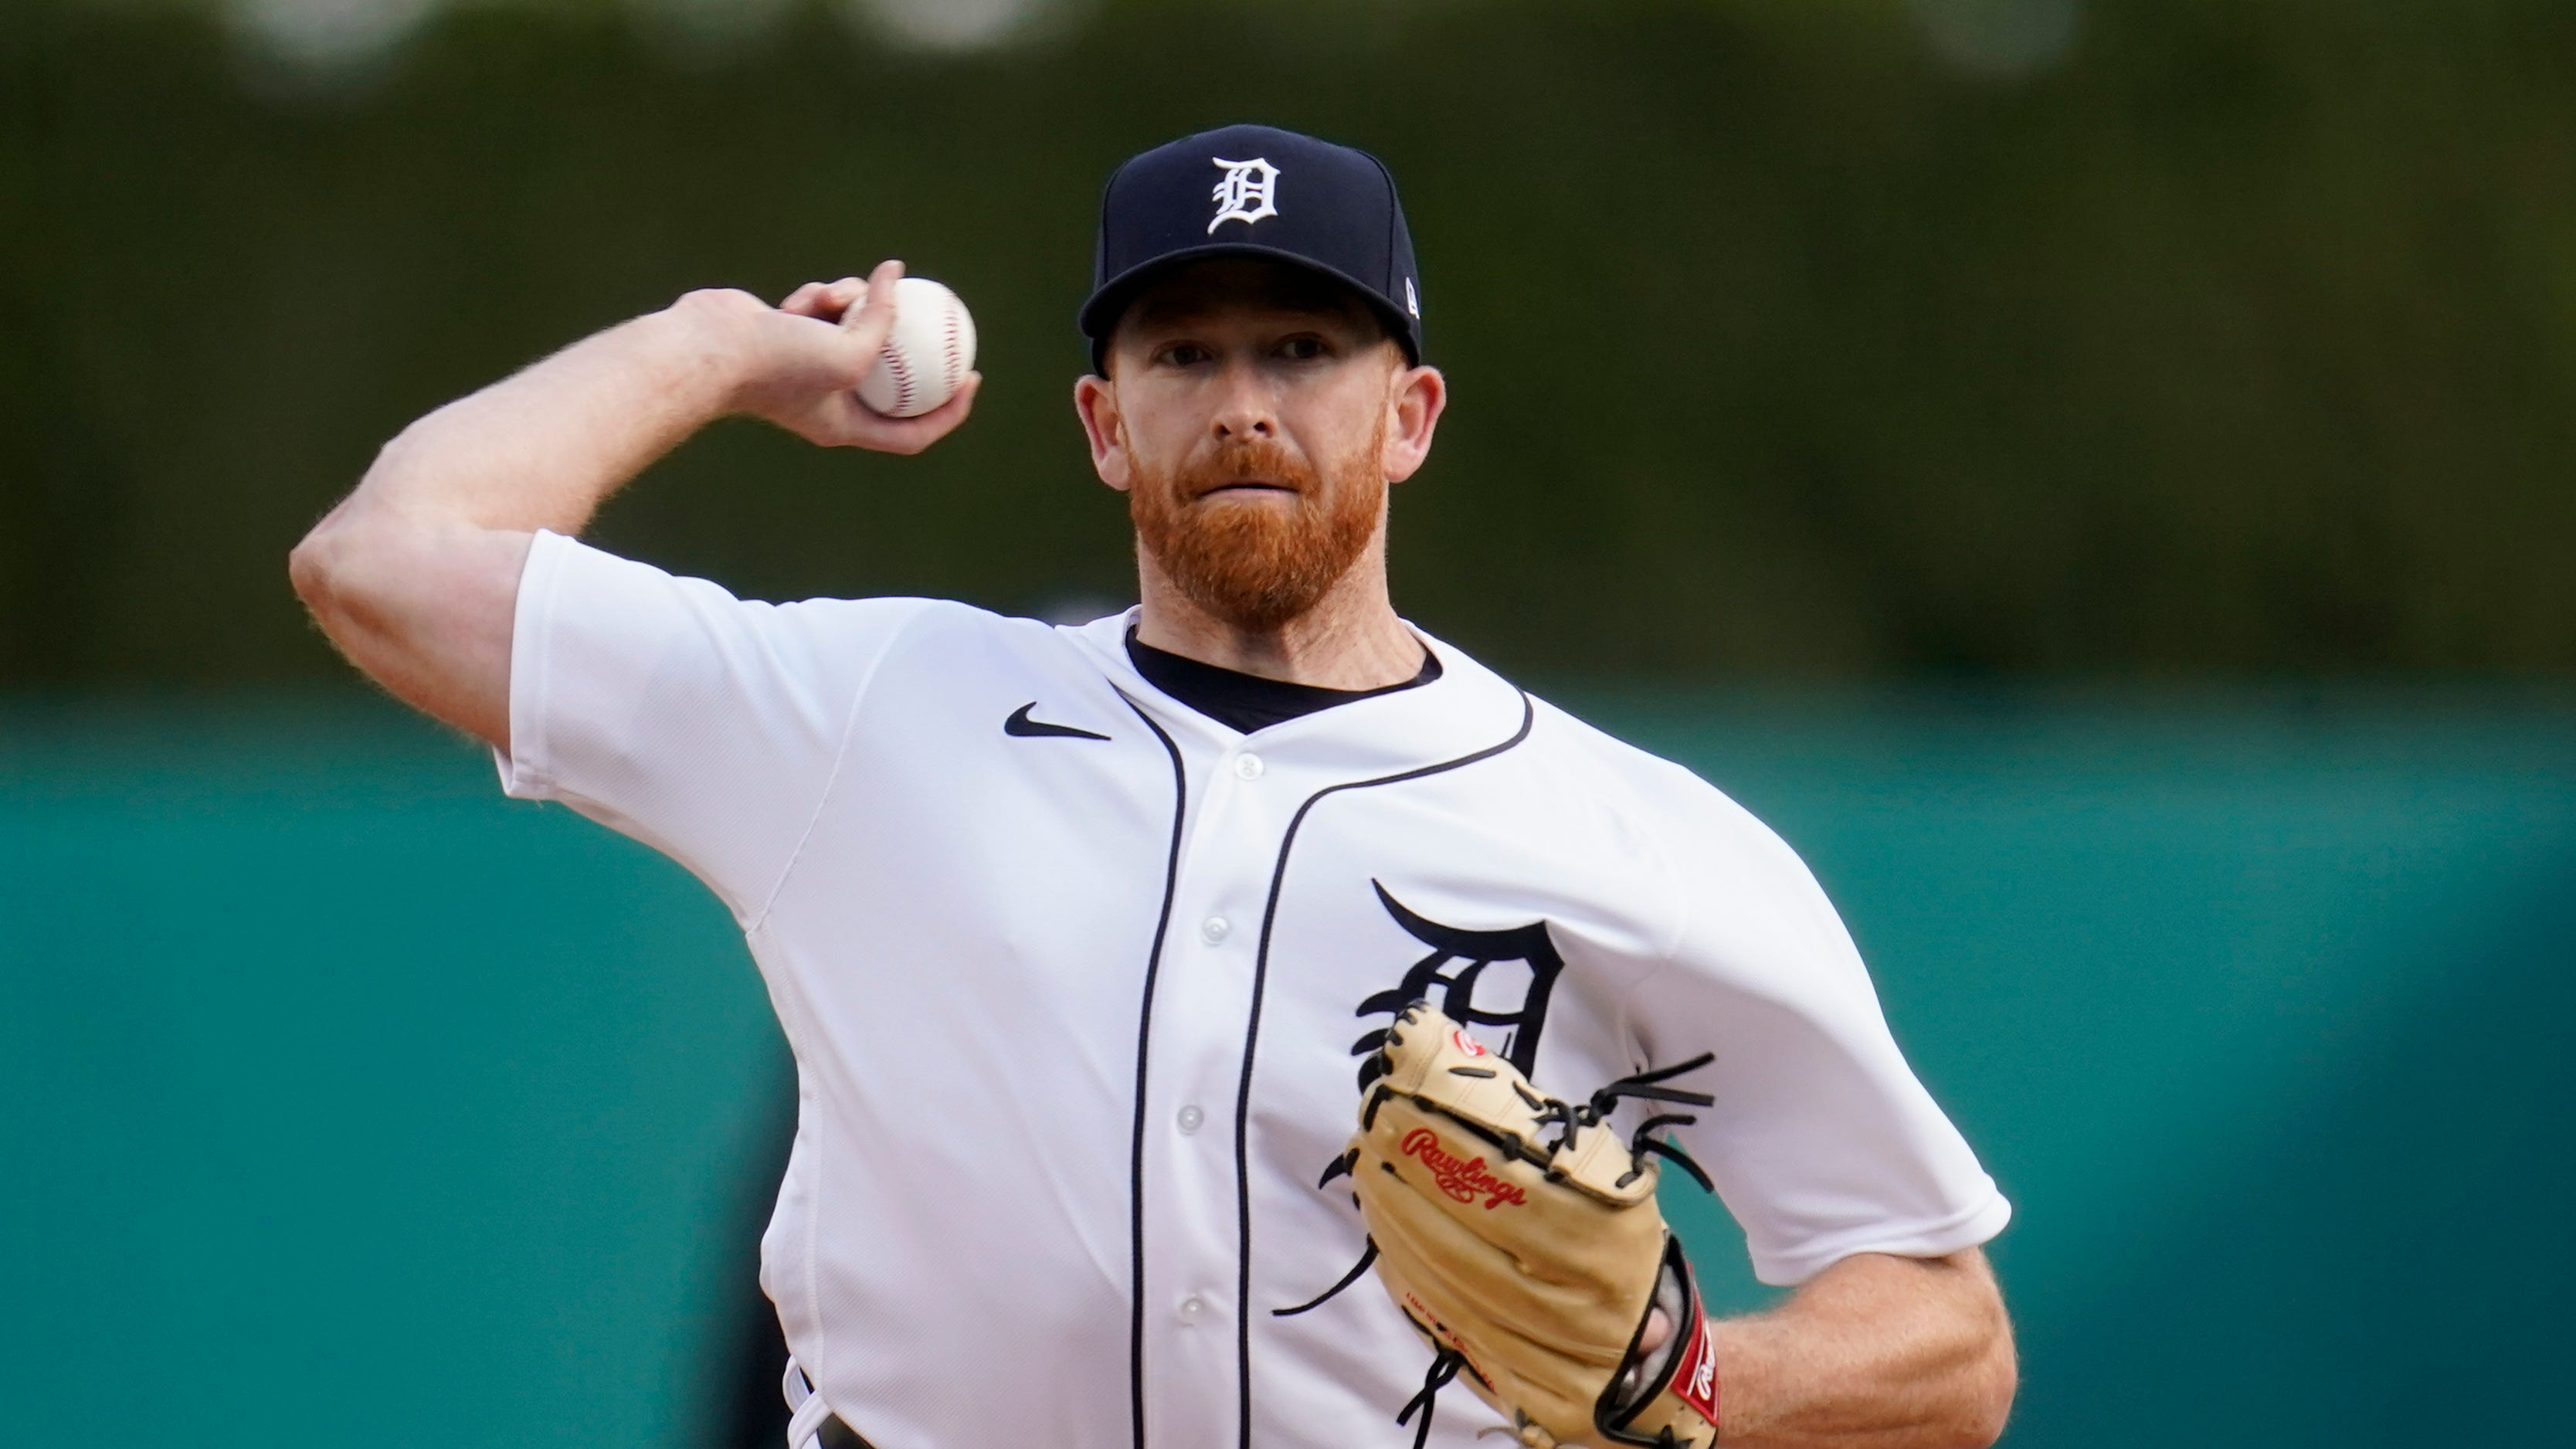 Detroit Tigers pitcher Spencer Turnbull throws against the Pittsburgh Pirates in the first inning during the second game of a doubleheader baseball game in Detroit, Wednesday, April 21, 2021.